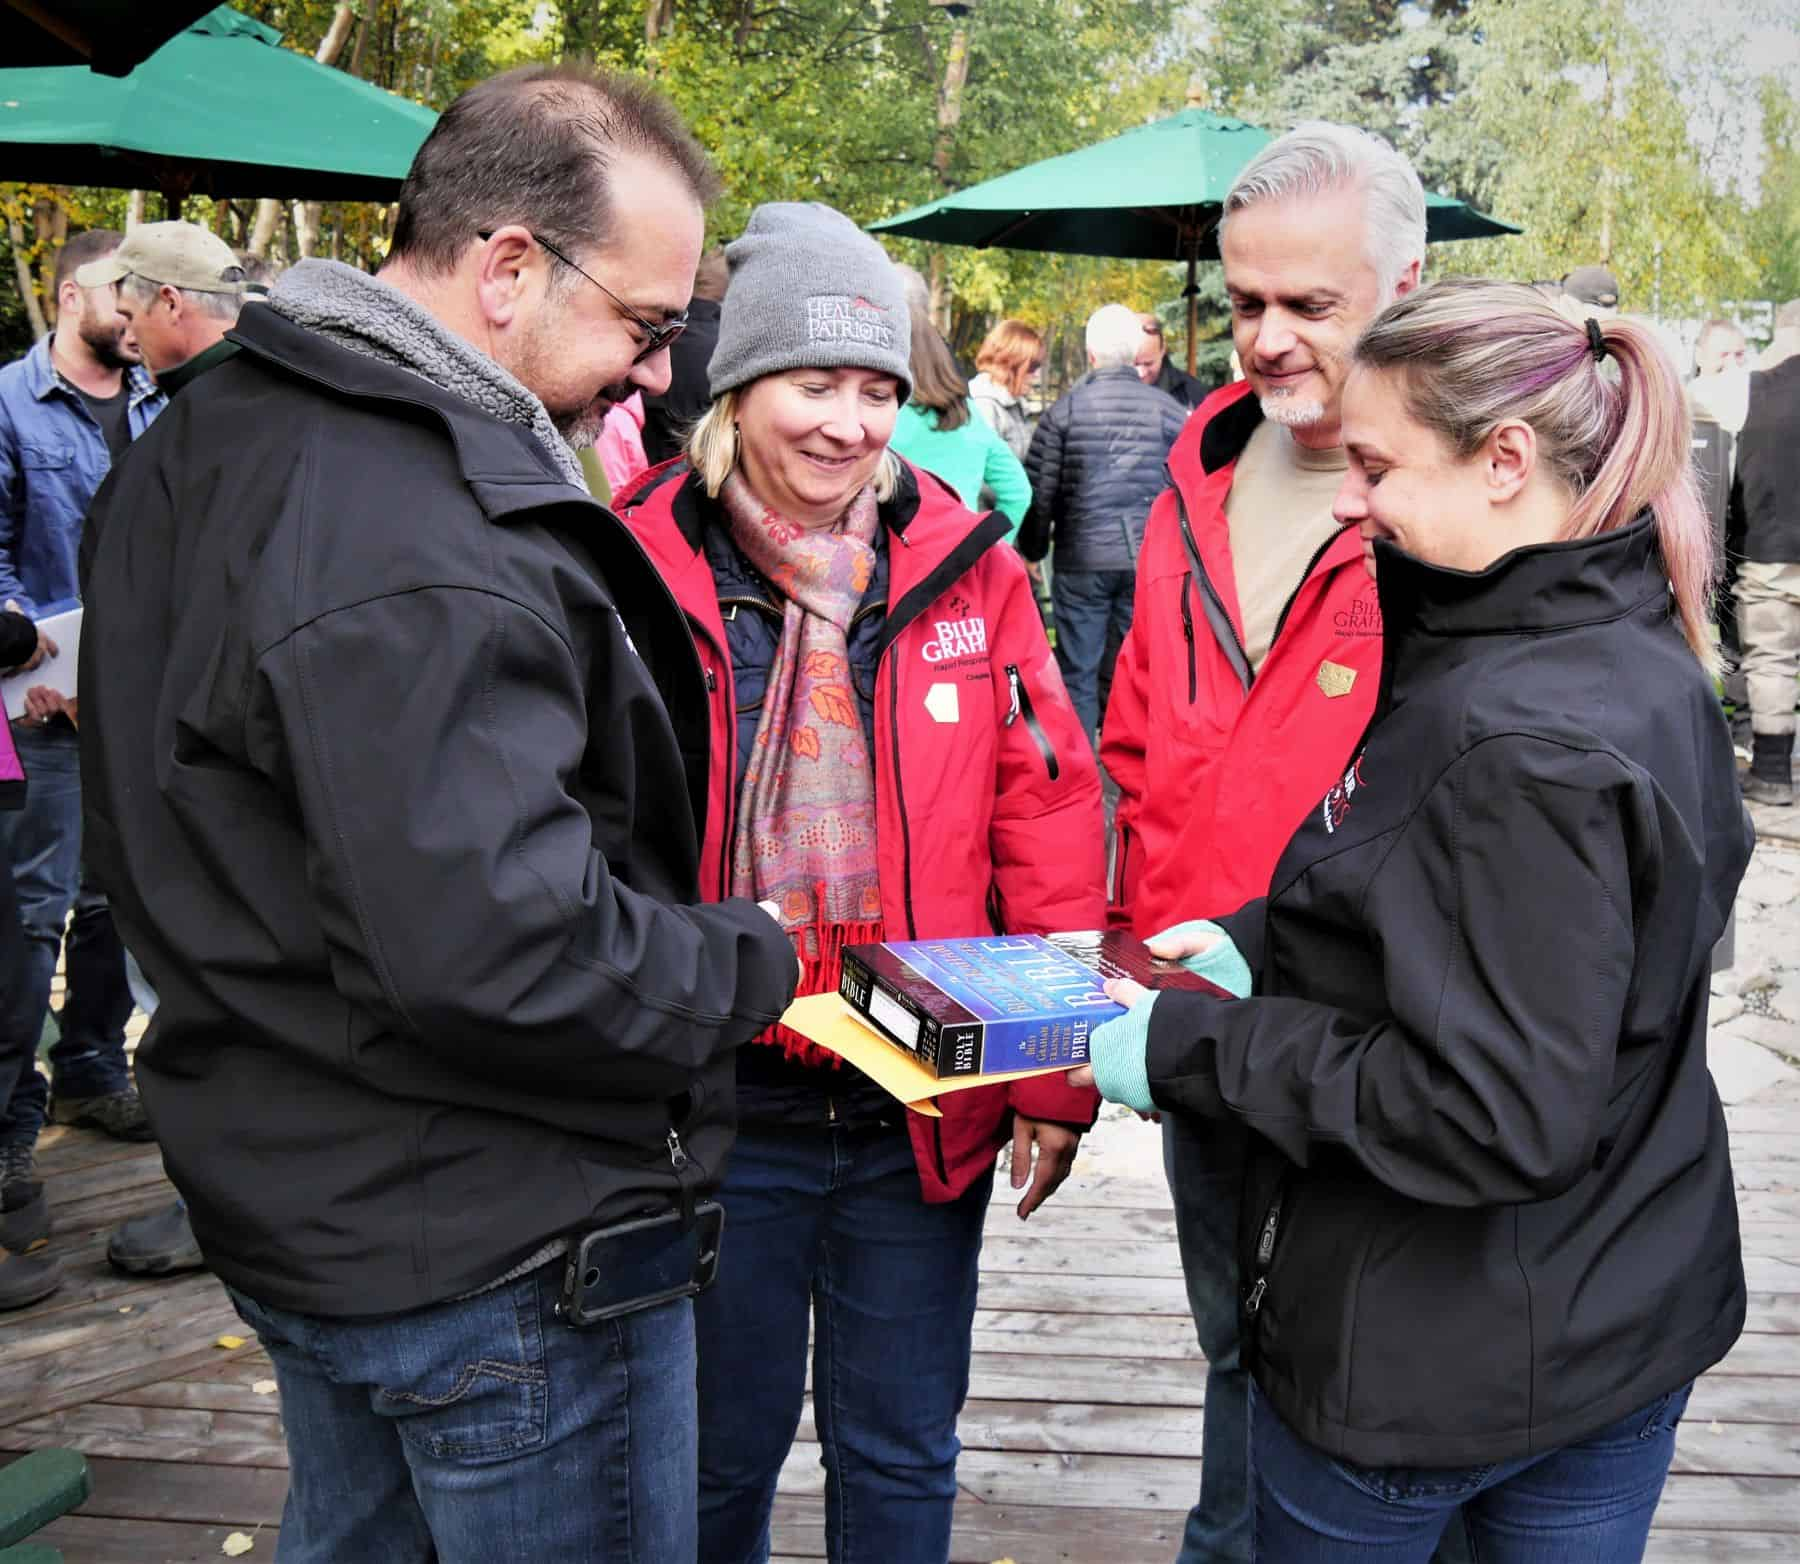 Canadian chaplains Irene and Laurent Trabadello presented Bibles signed by Franklin Graham and Operation Heal Our Patriots staff to couples at the end of the week in Port Alsworth, Alaska.